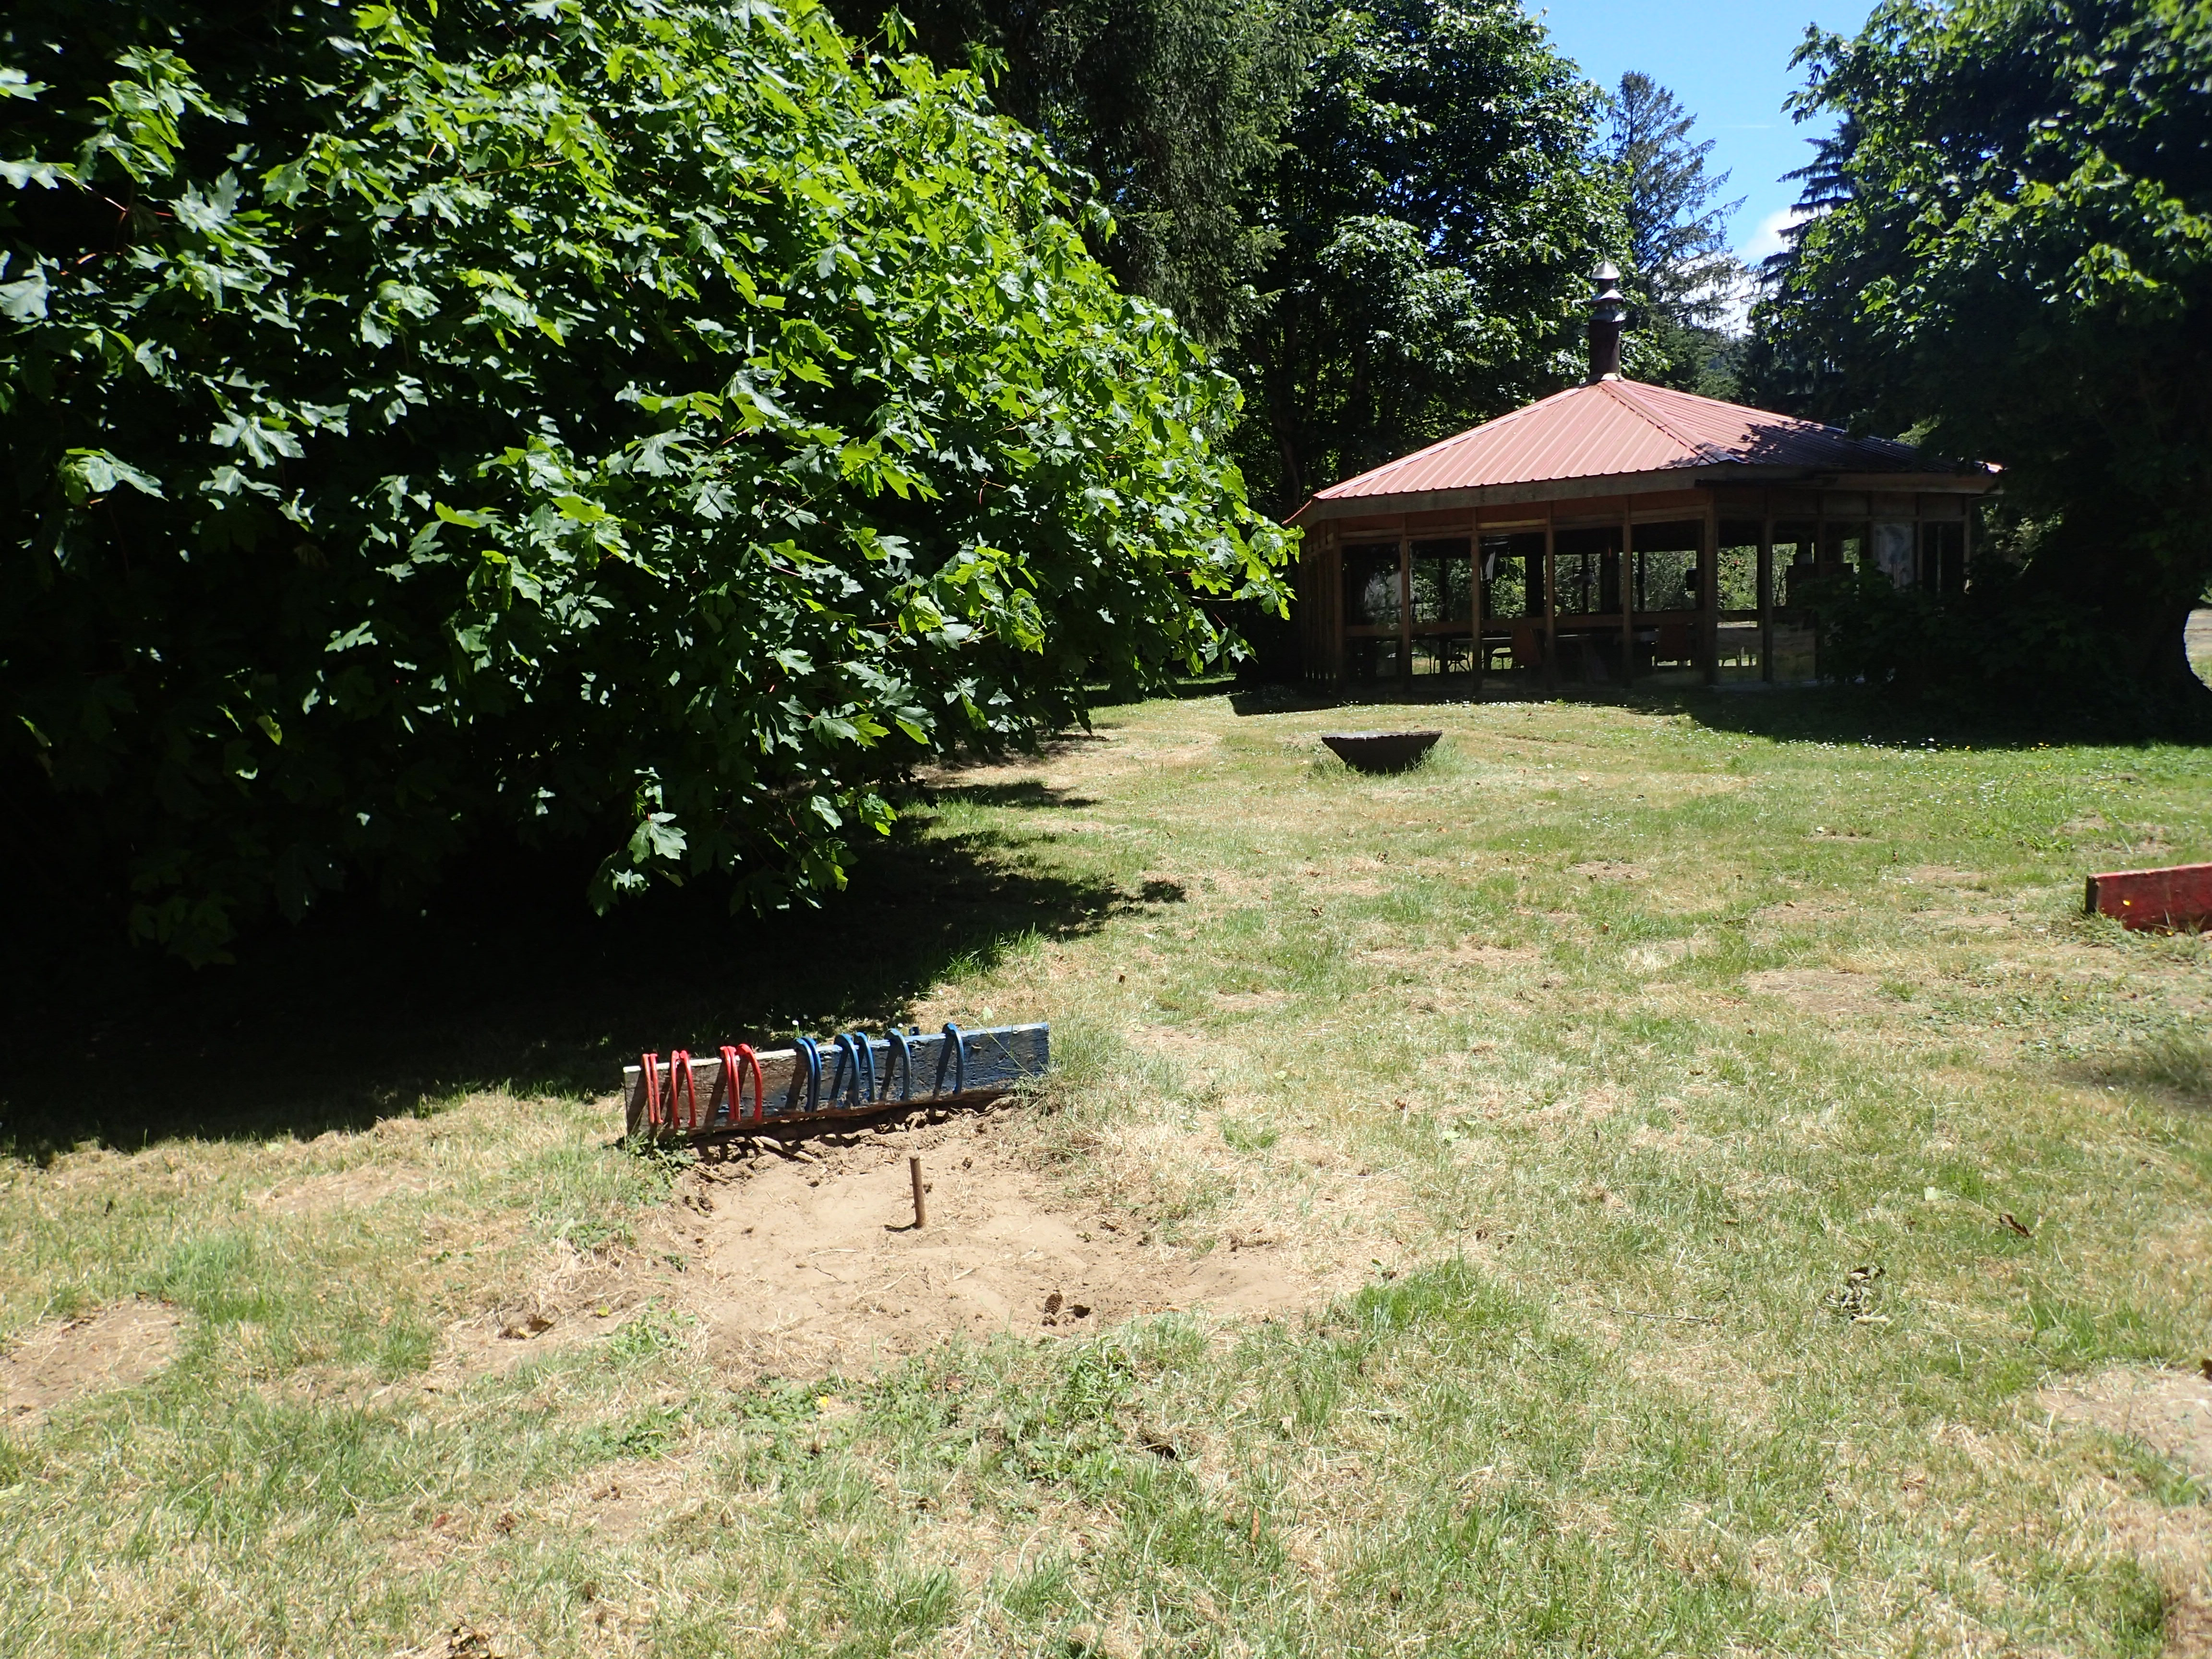 Up for a game of horseshoes?